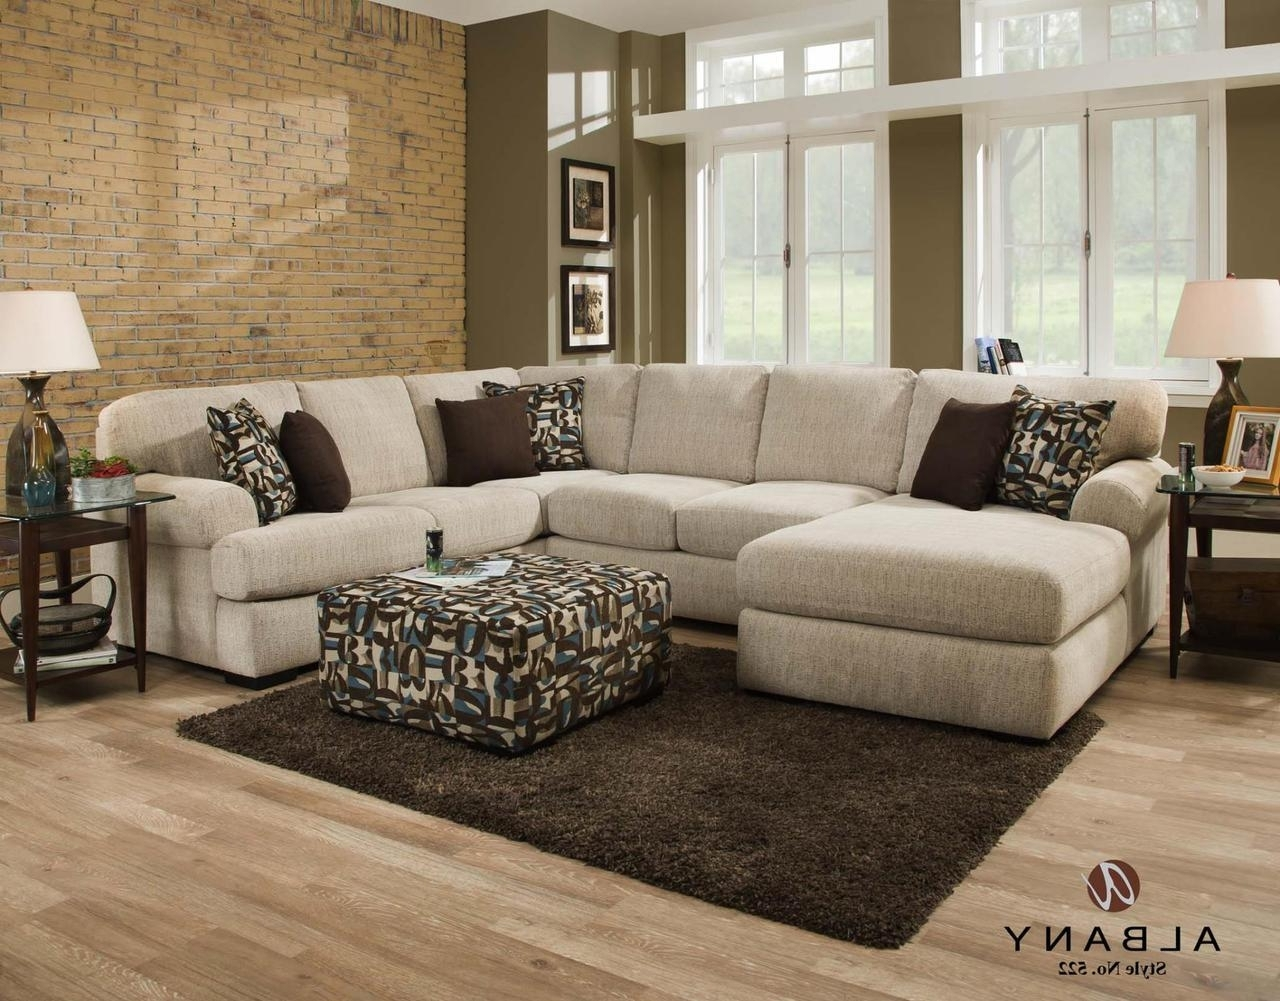 Widely Used Camel Sectional Sofas Pertaining To Albany Sectional Sofa – Hotelsbacau (View 6 of 15)